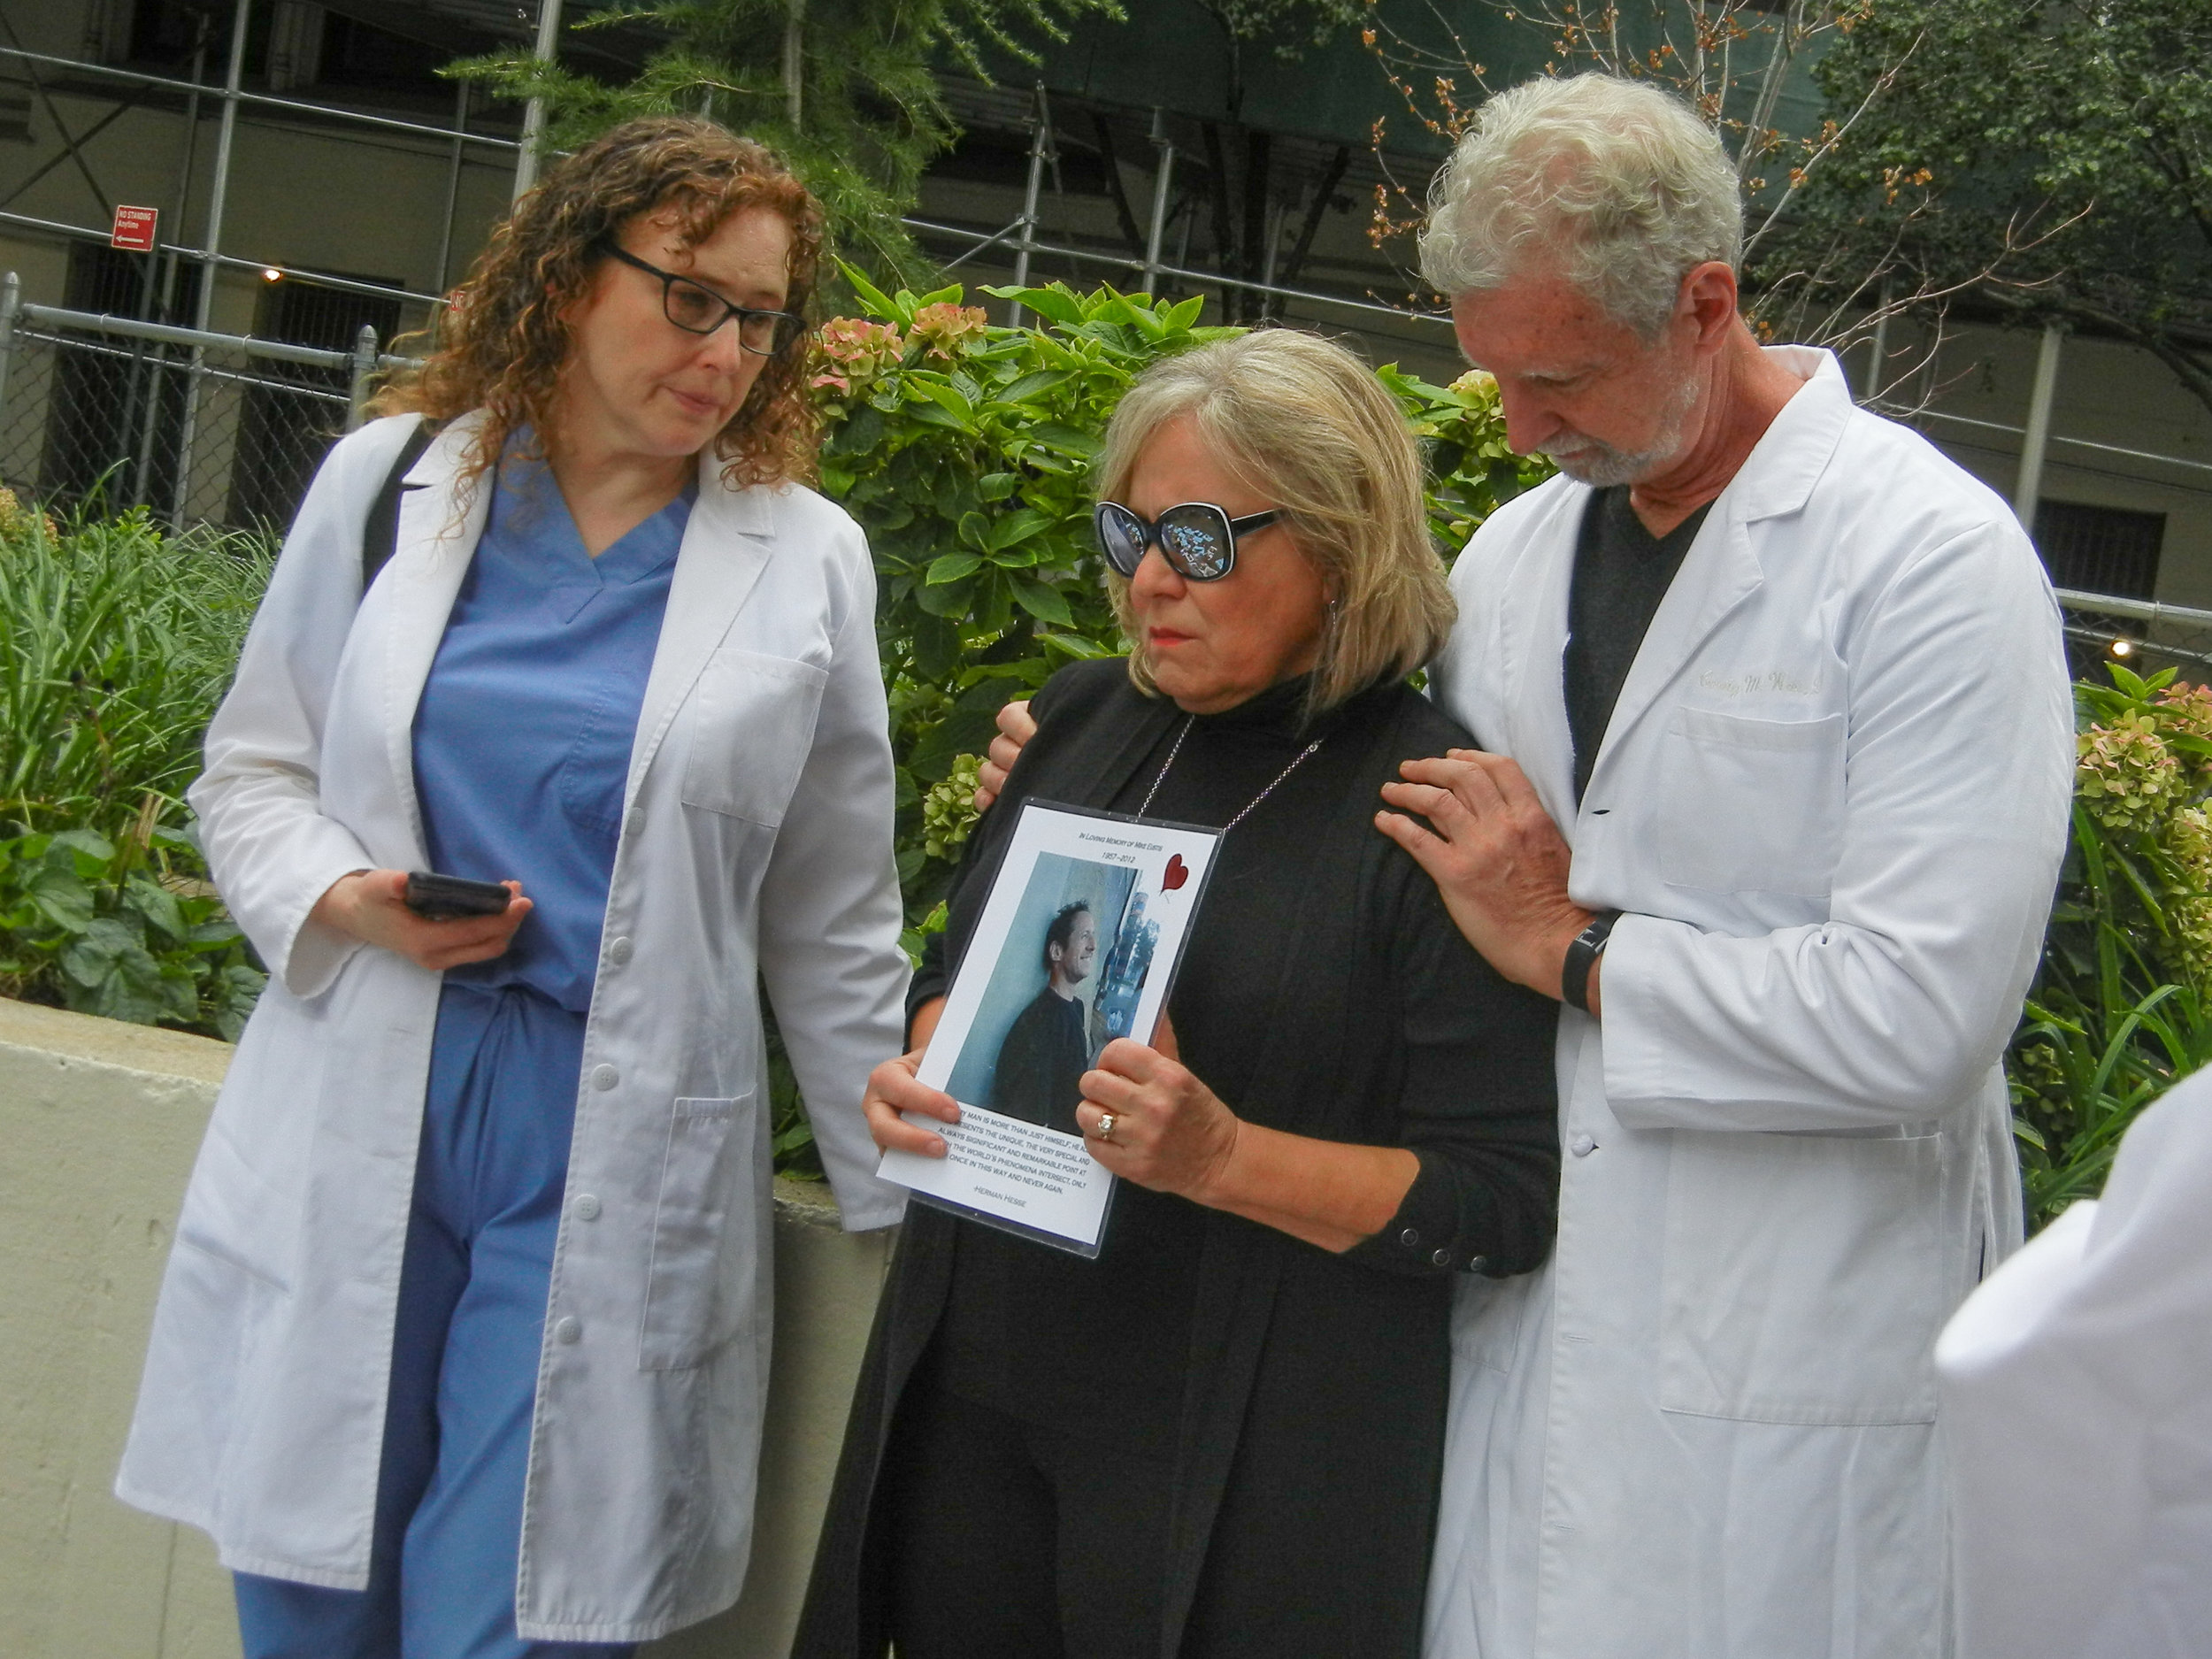 Dr. Pamela Wible (left) led a memorial service in honor of Dr. Deelshad Joomun, a Mt. Sinai resident lost to suicide in January 2018, and invited parents and friends of the lost to speak | Carolyn Adams